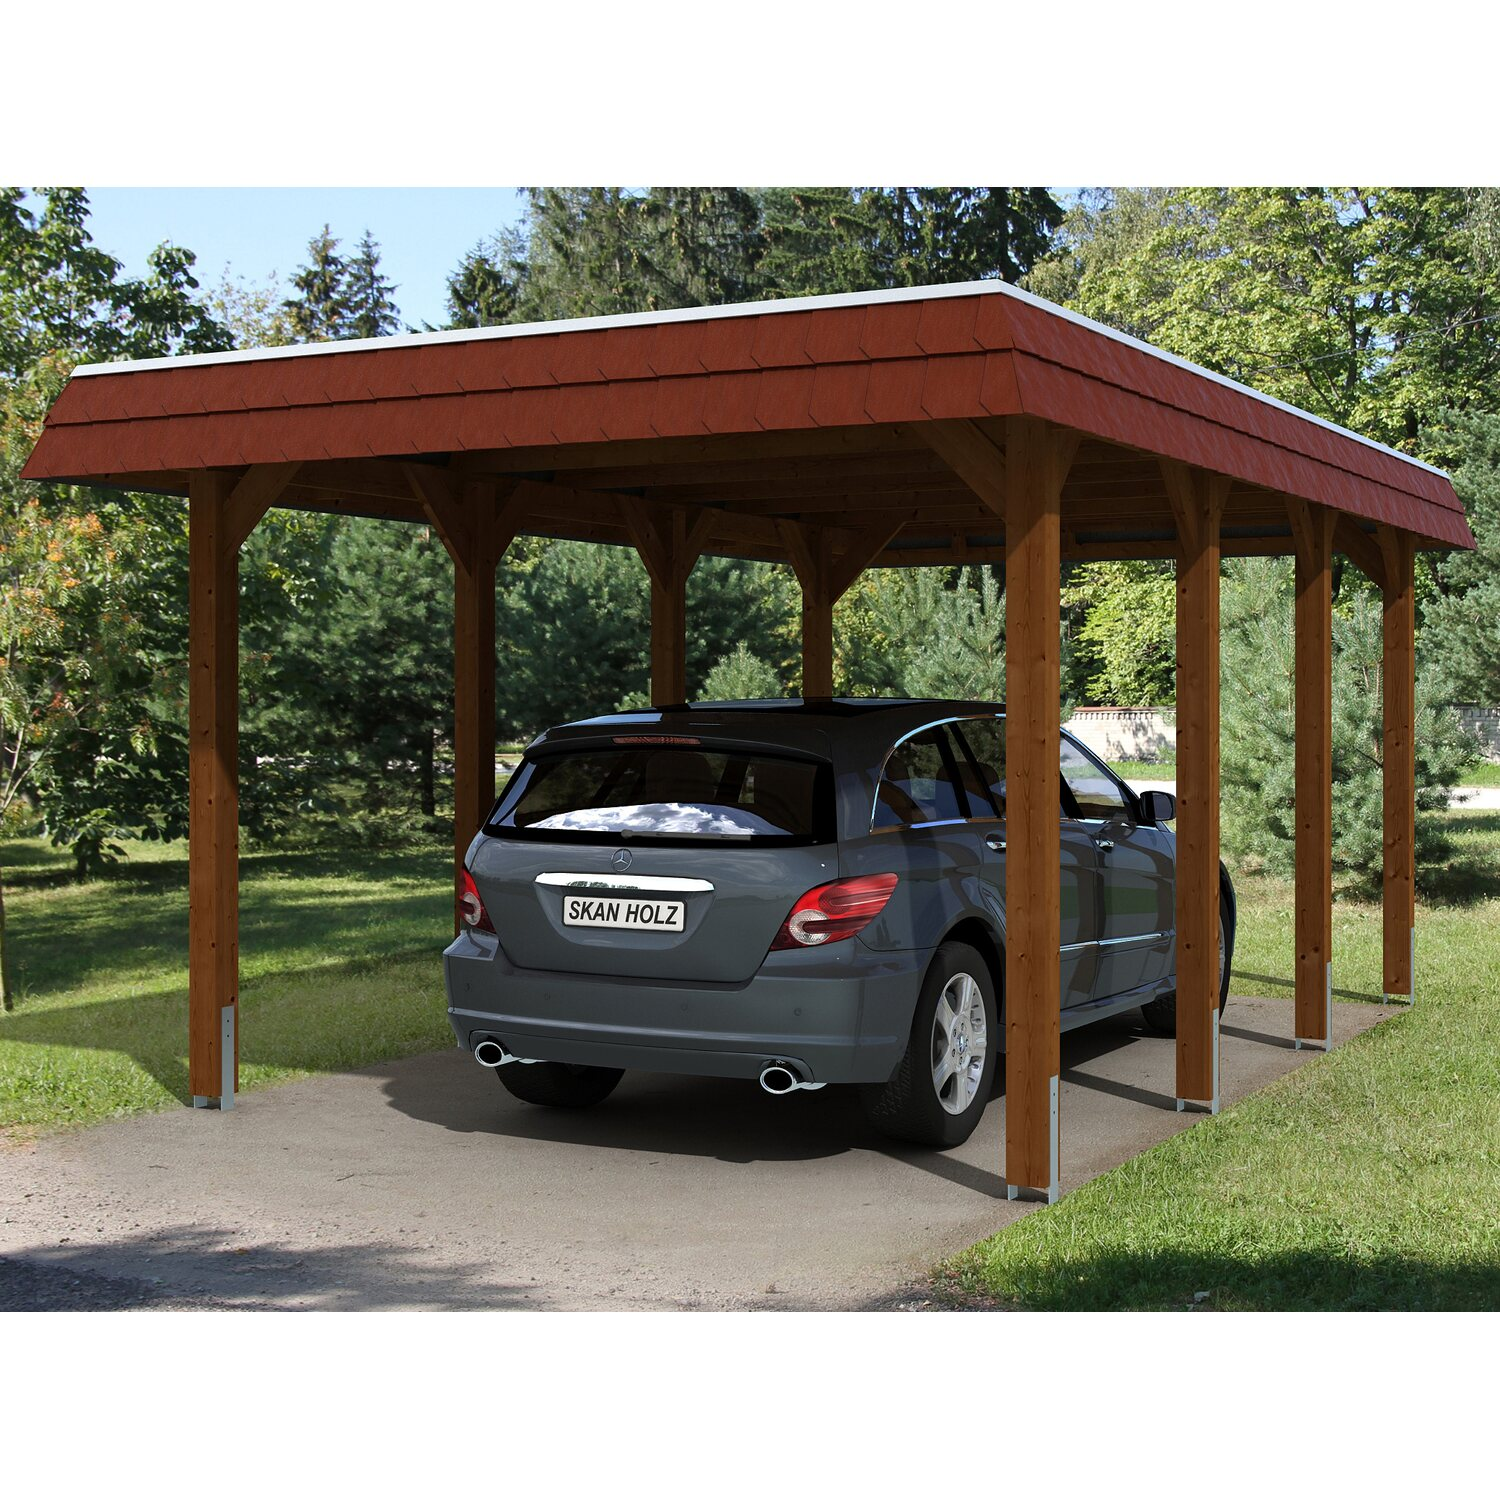 skan holz carport spreewald 345 cm x 589 cm rote blende nussbaum kaufen bei obi. Black Bedroom Furniture Sets. Home Design Ideas